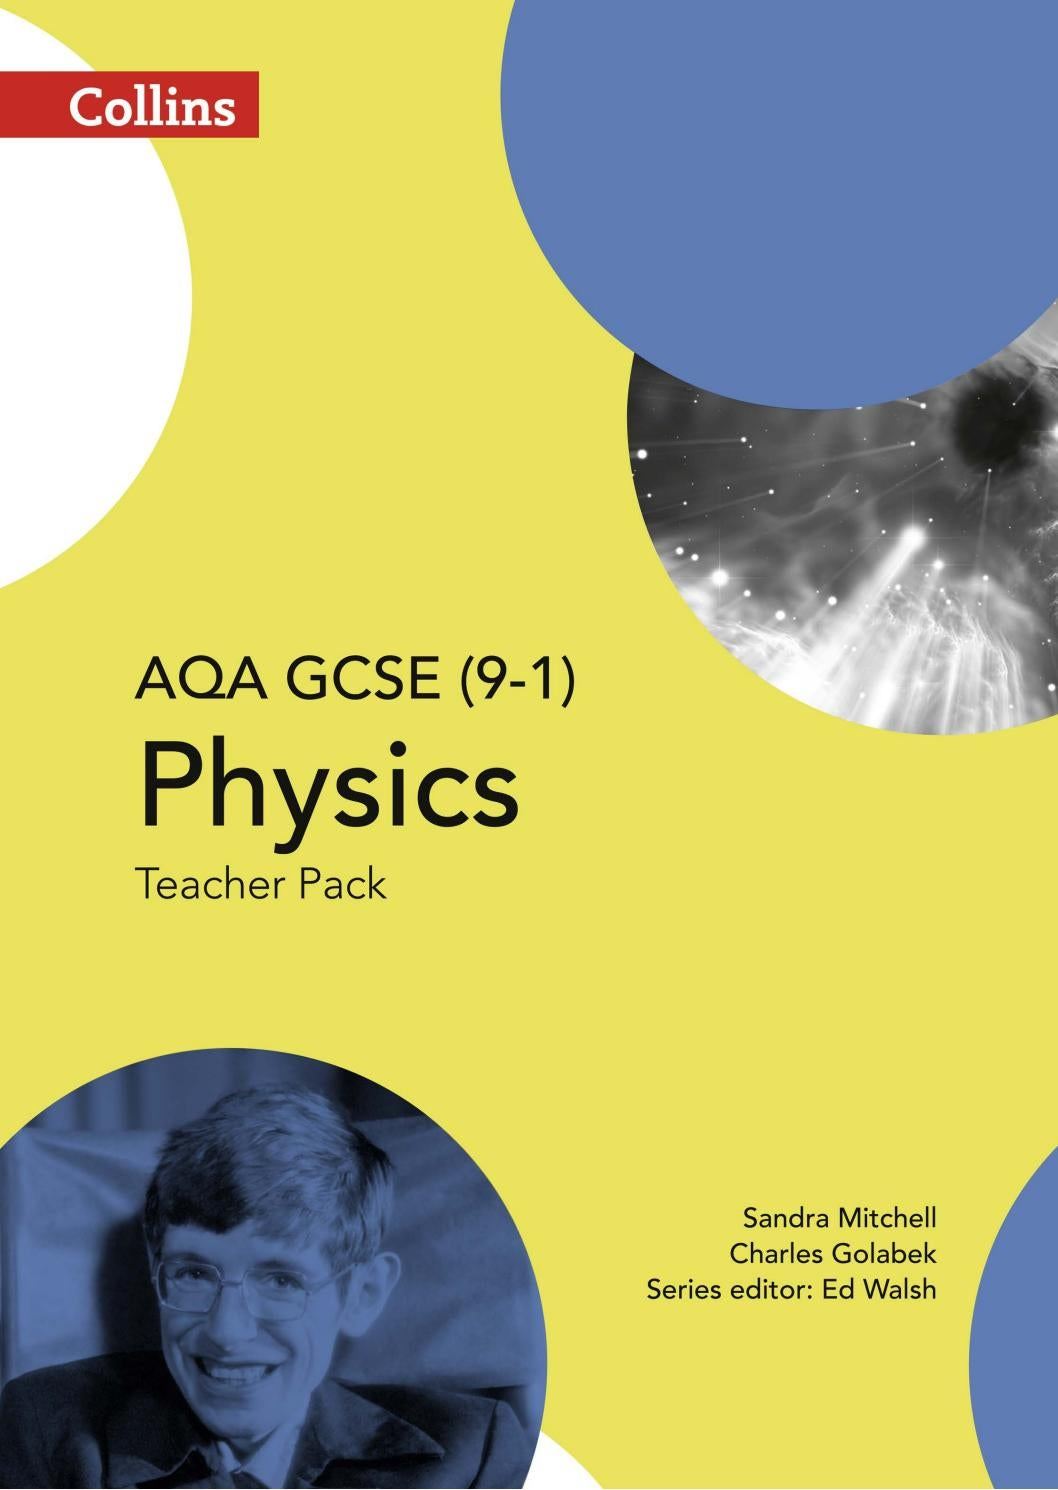 wjec gcse coursework Ewan melling flavell is an examiner for aqa in addition to moderating gcse coursework for ocr he teaches at a secondary school whilst giving private tution to students in maths from ks2 to gcse level and science from ks2 to a level.